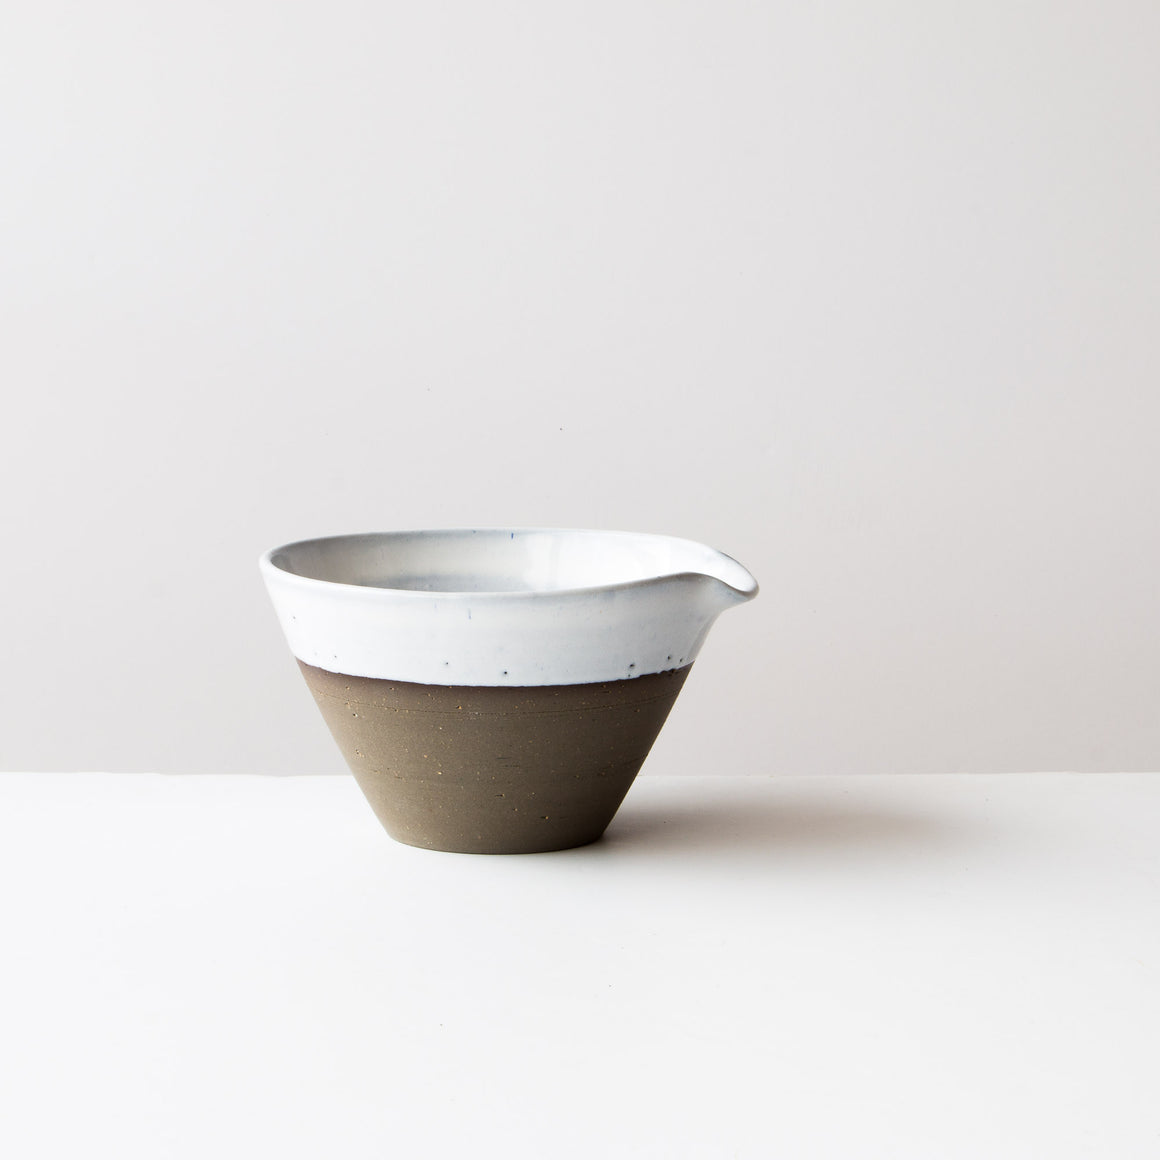 Two Ceramic Mixing Bowls - Sold by Chic & Basta